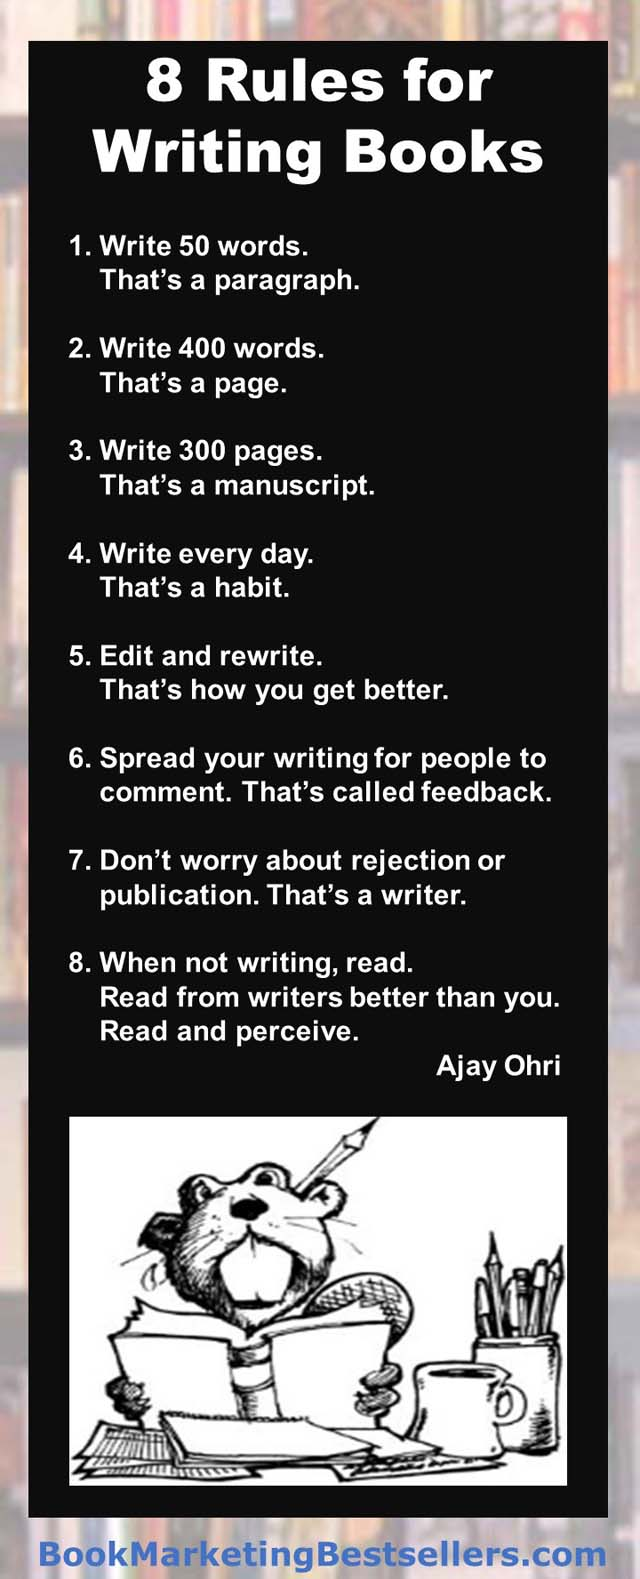 Ajay Ohri: The 12 Rules of Writing – Book Marketing Bestsellers